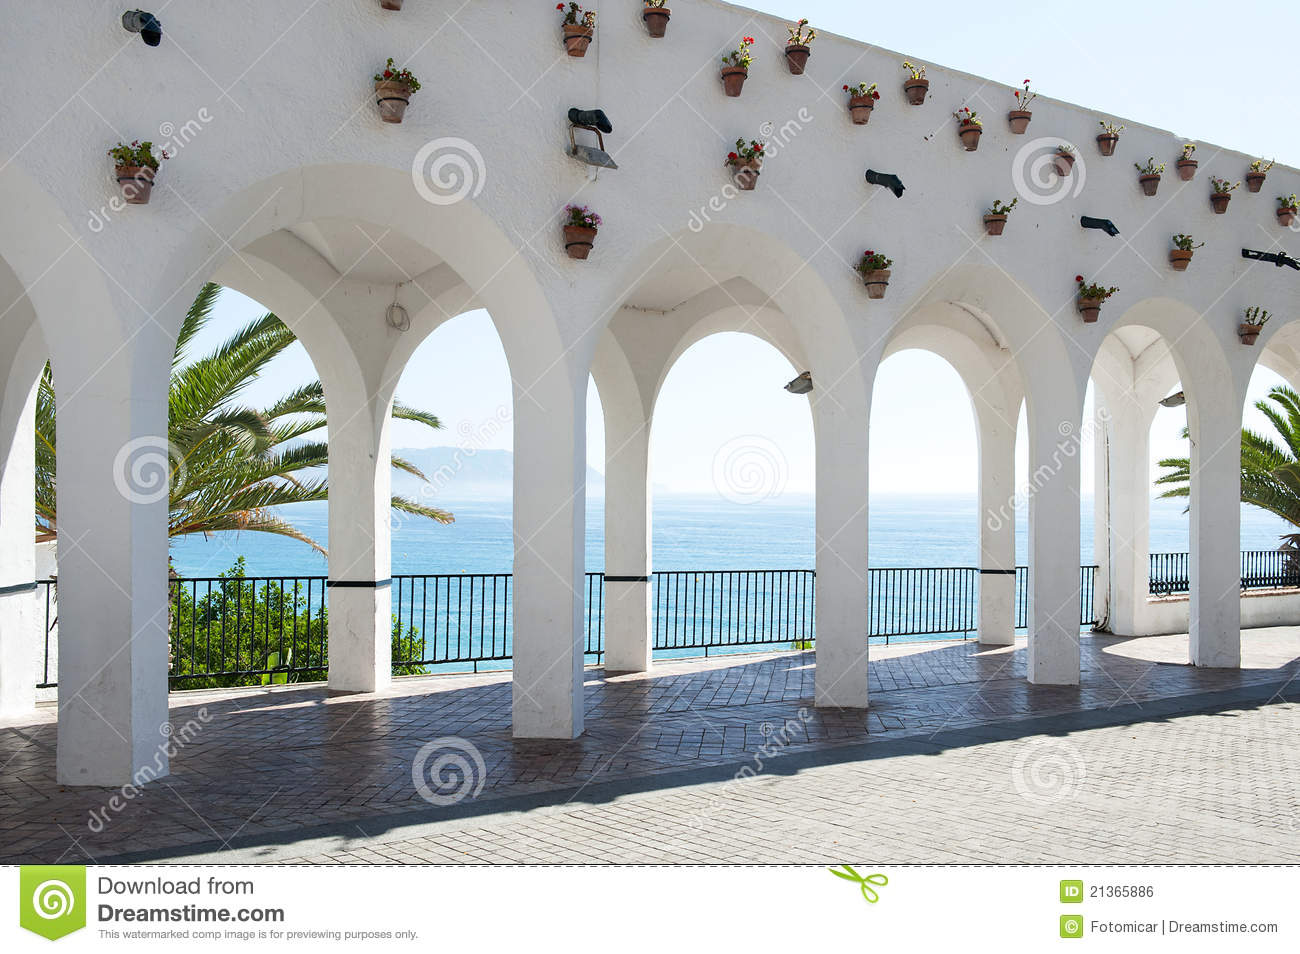 Arch 39 s at balcon de europa nerja stock photo image for Accesorios para toldos de balcon